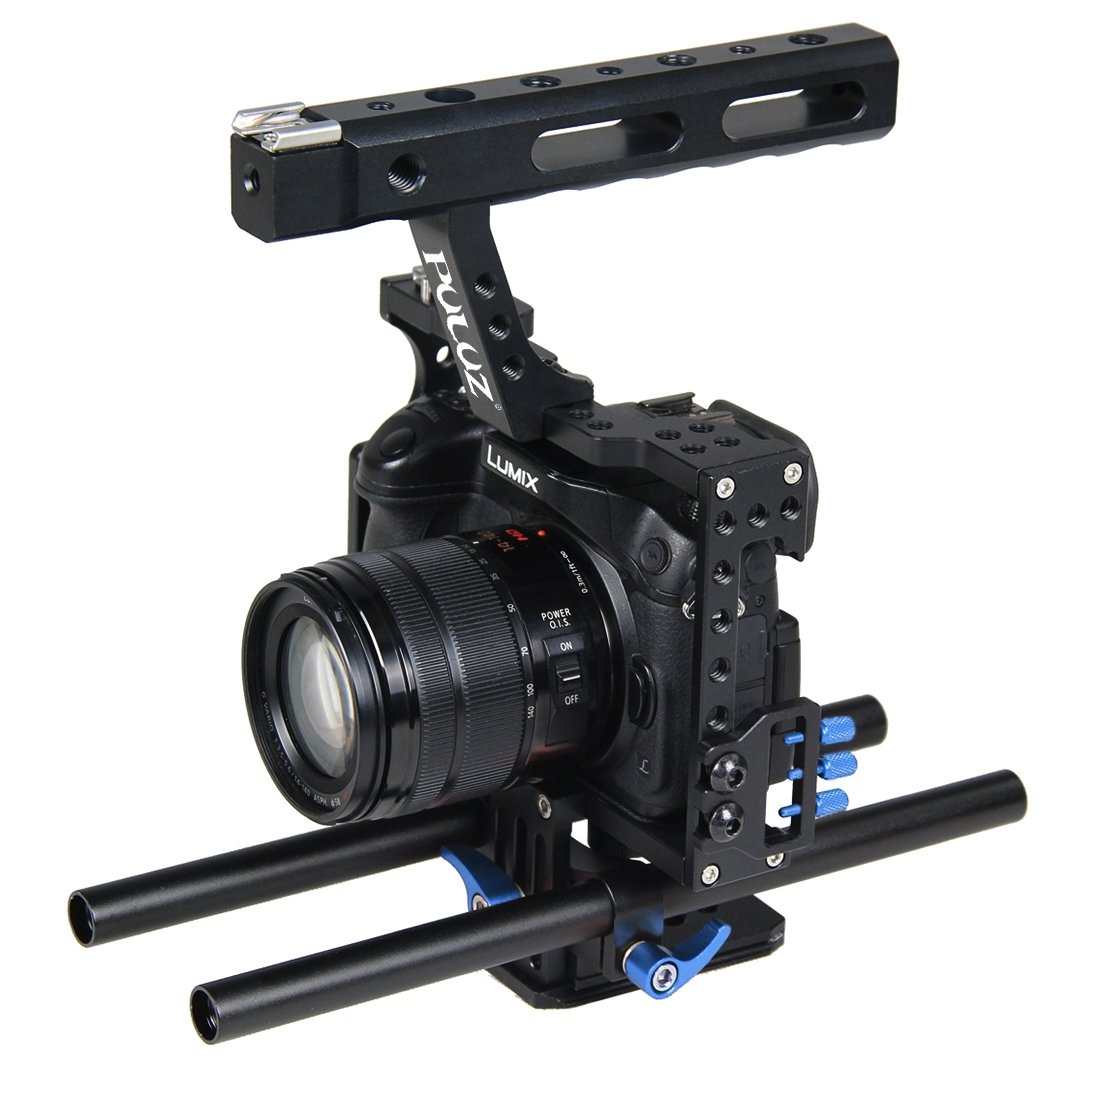 Camera Video Cage Rig, PULUZ Professional Aluminum Alloy Handheld Stabilizer Stabilizing Kit with Top Handle Grip + Rail Rod for Panasonic G7 Lumix DMC-GH4/ GH3 & Sony A7/ A7S/ A7R/ A7RII/ A7SII(Blue)